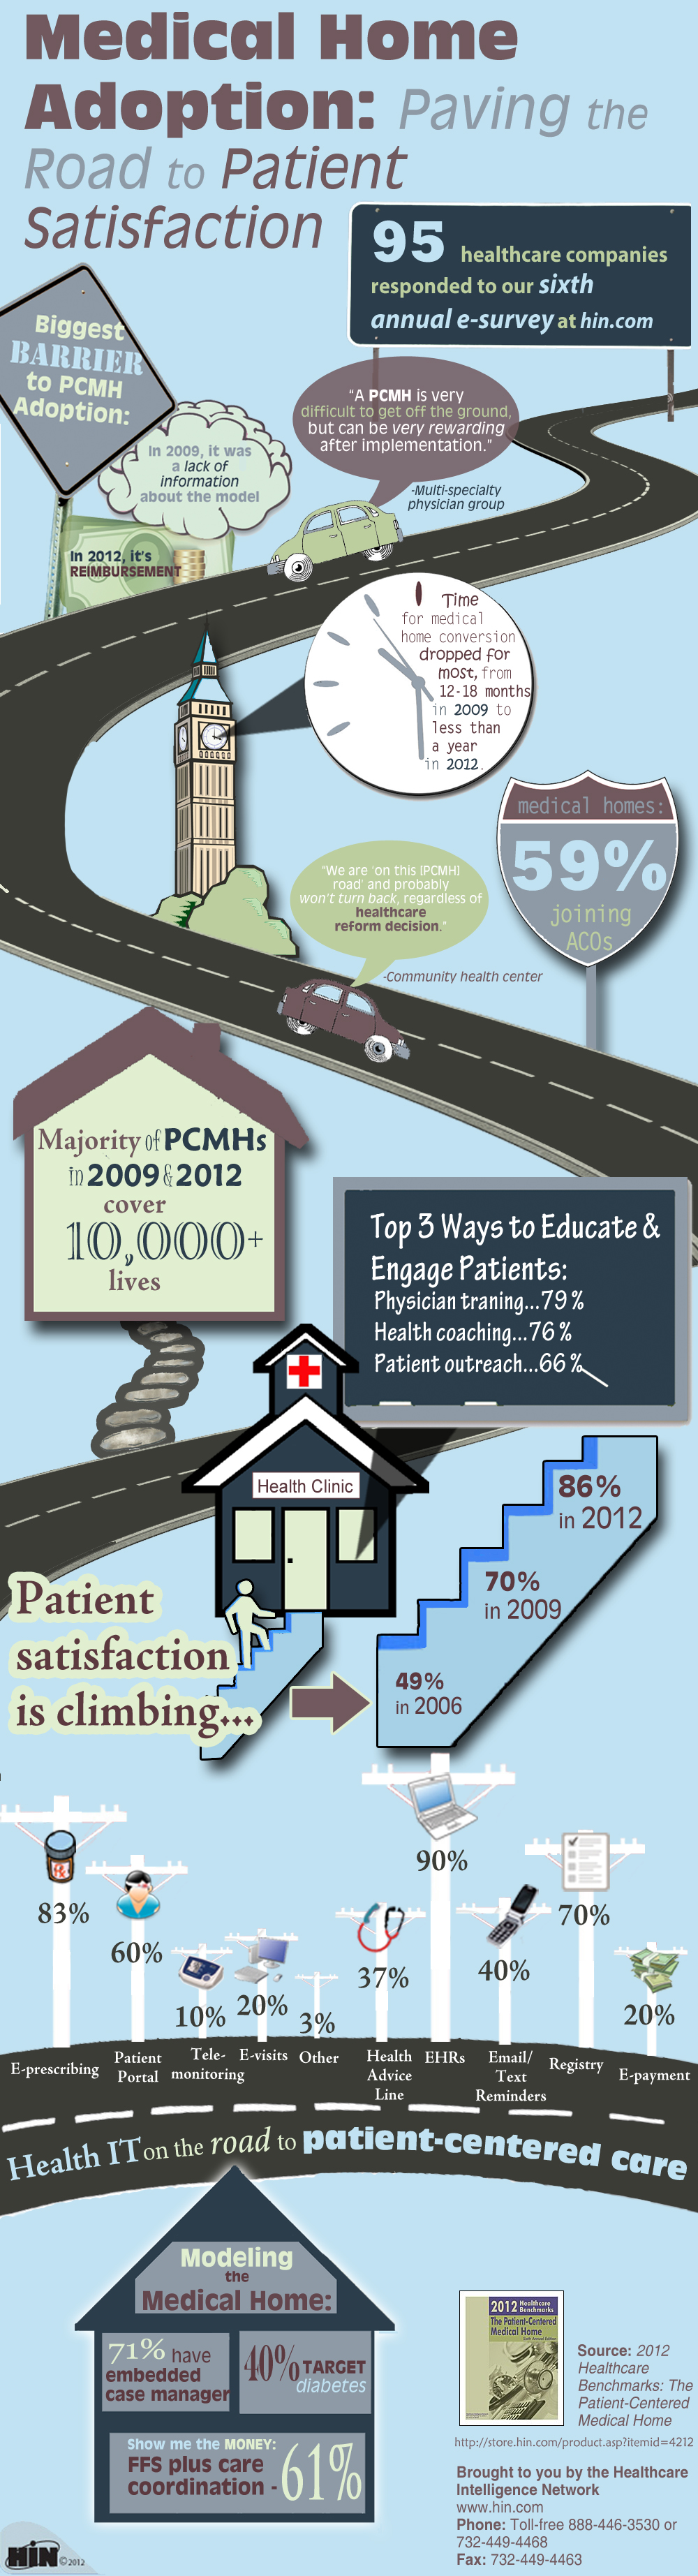 patient centered medical home summary The safety net medical home initiative patient-centered interactions executive summary b patient-centered interactions: engaging patients in health and healthcare.